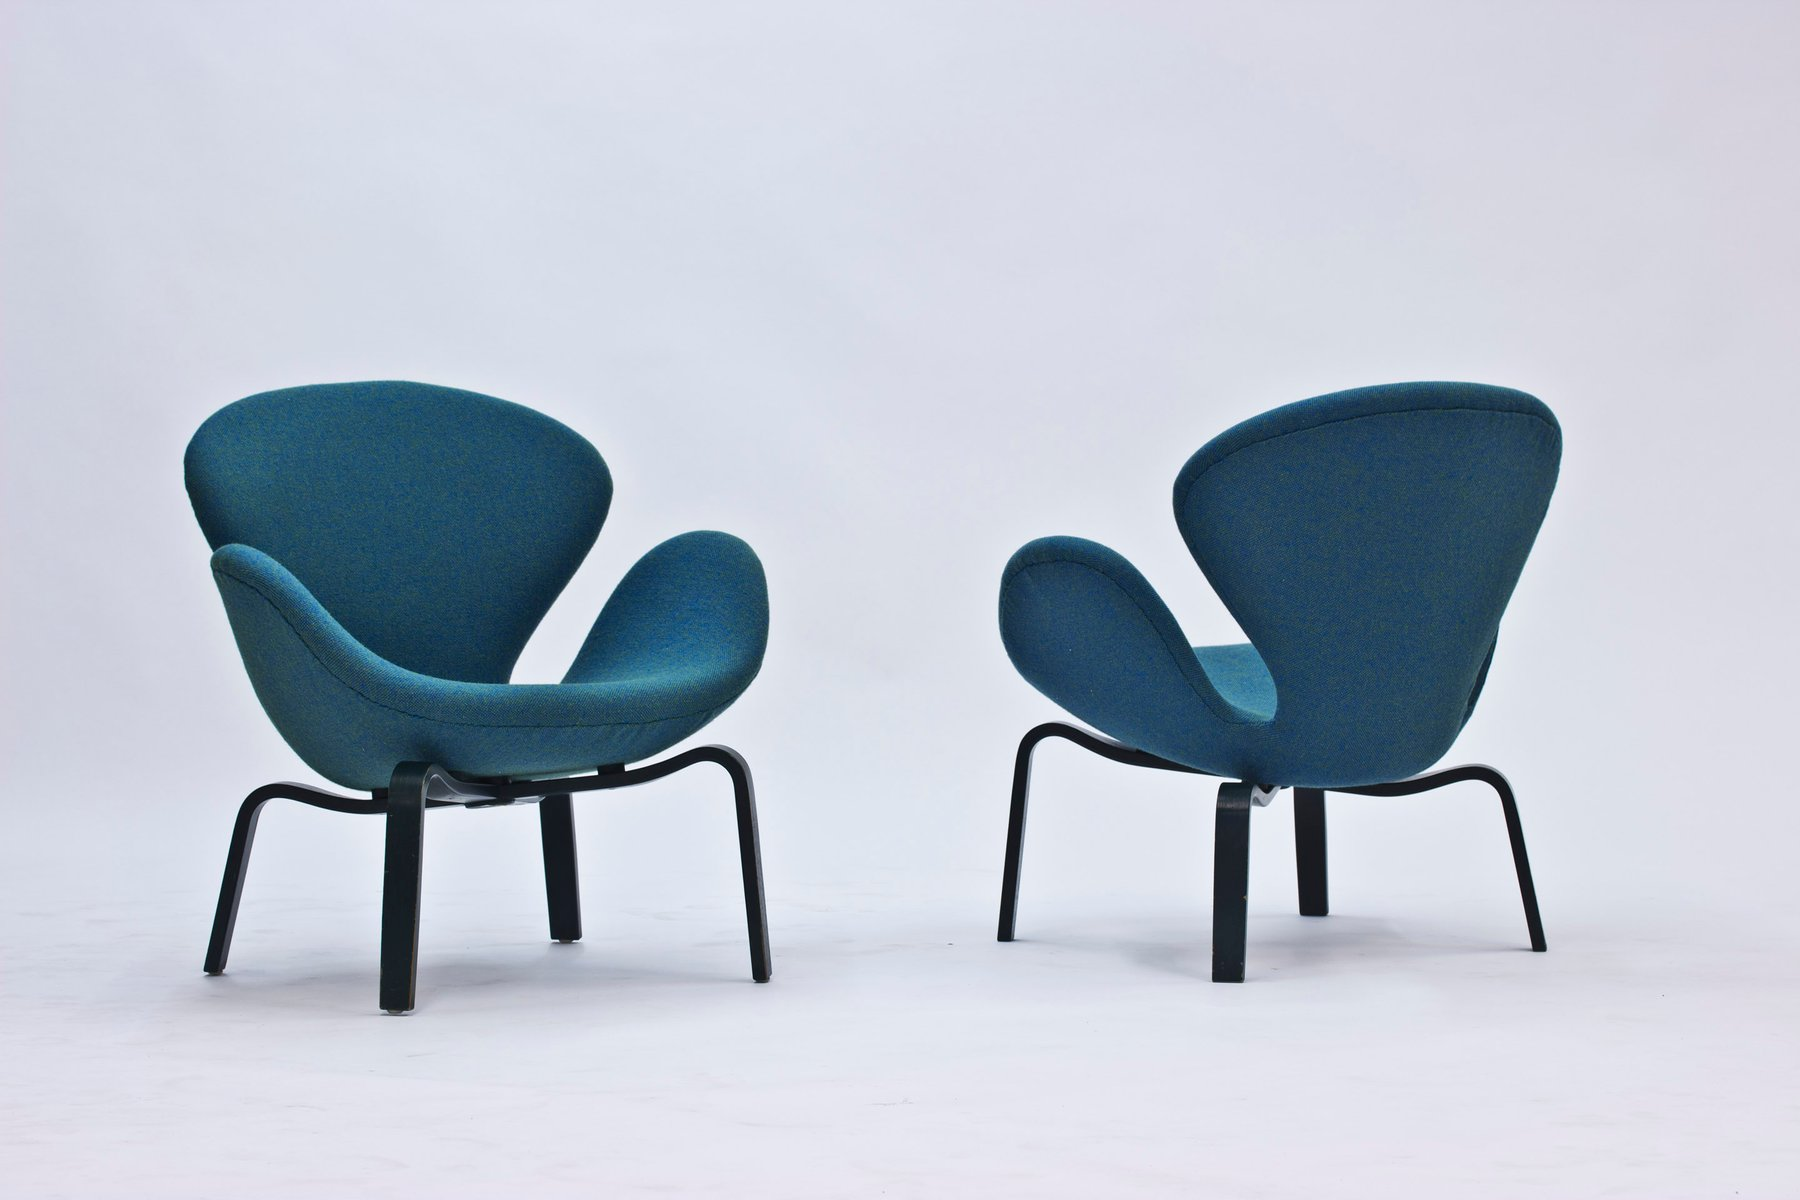 wooden chair singapore cane rocking swan lounge chairs by arne jacobsen for fritz hansen, 1969, set of 2 sale at pamono